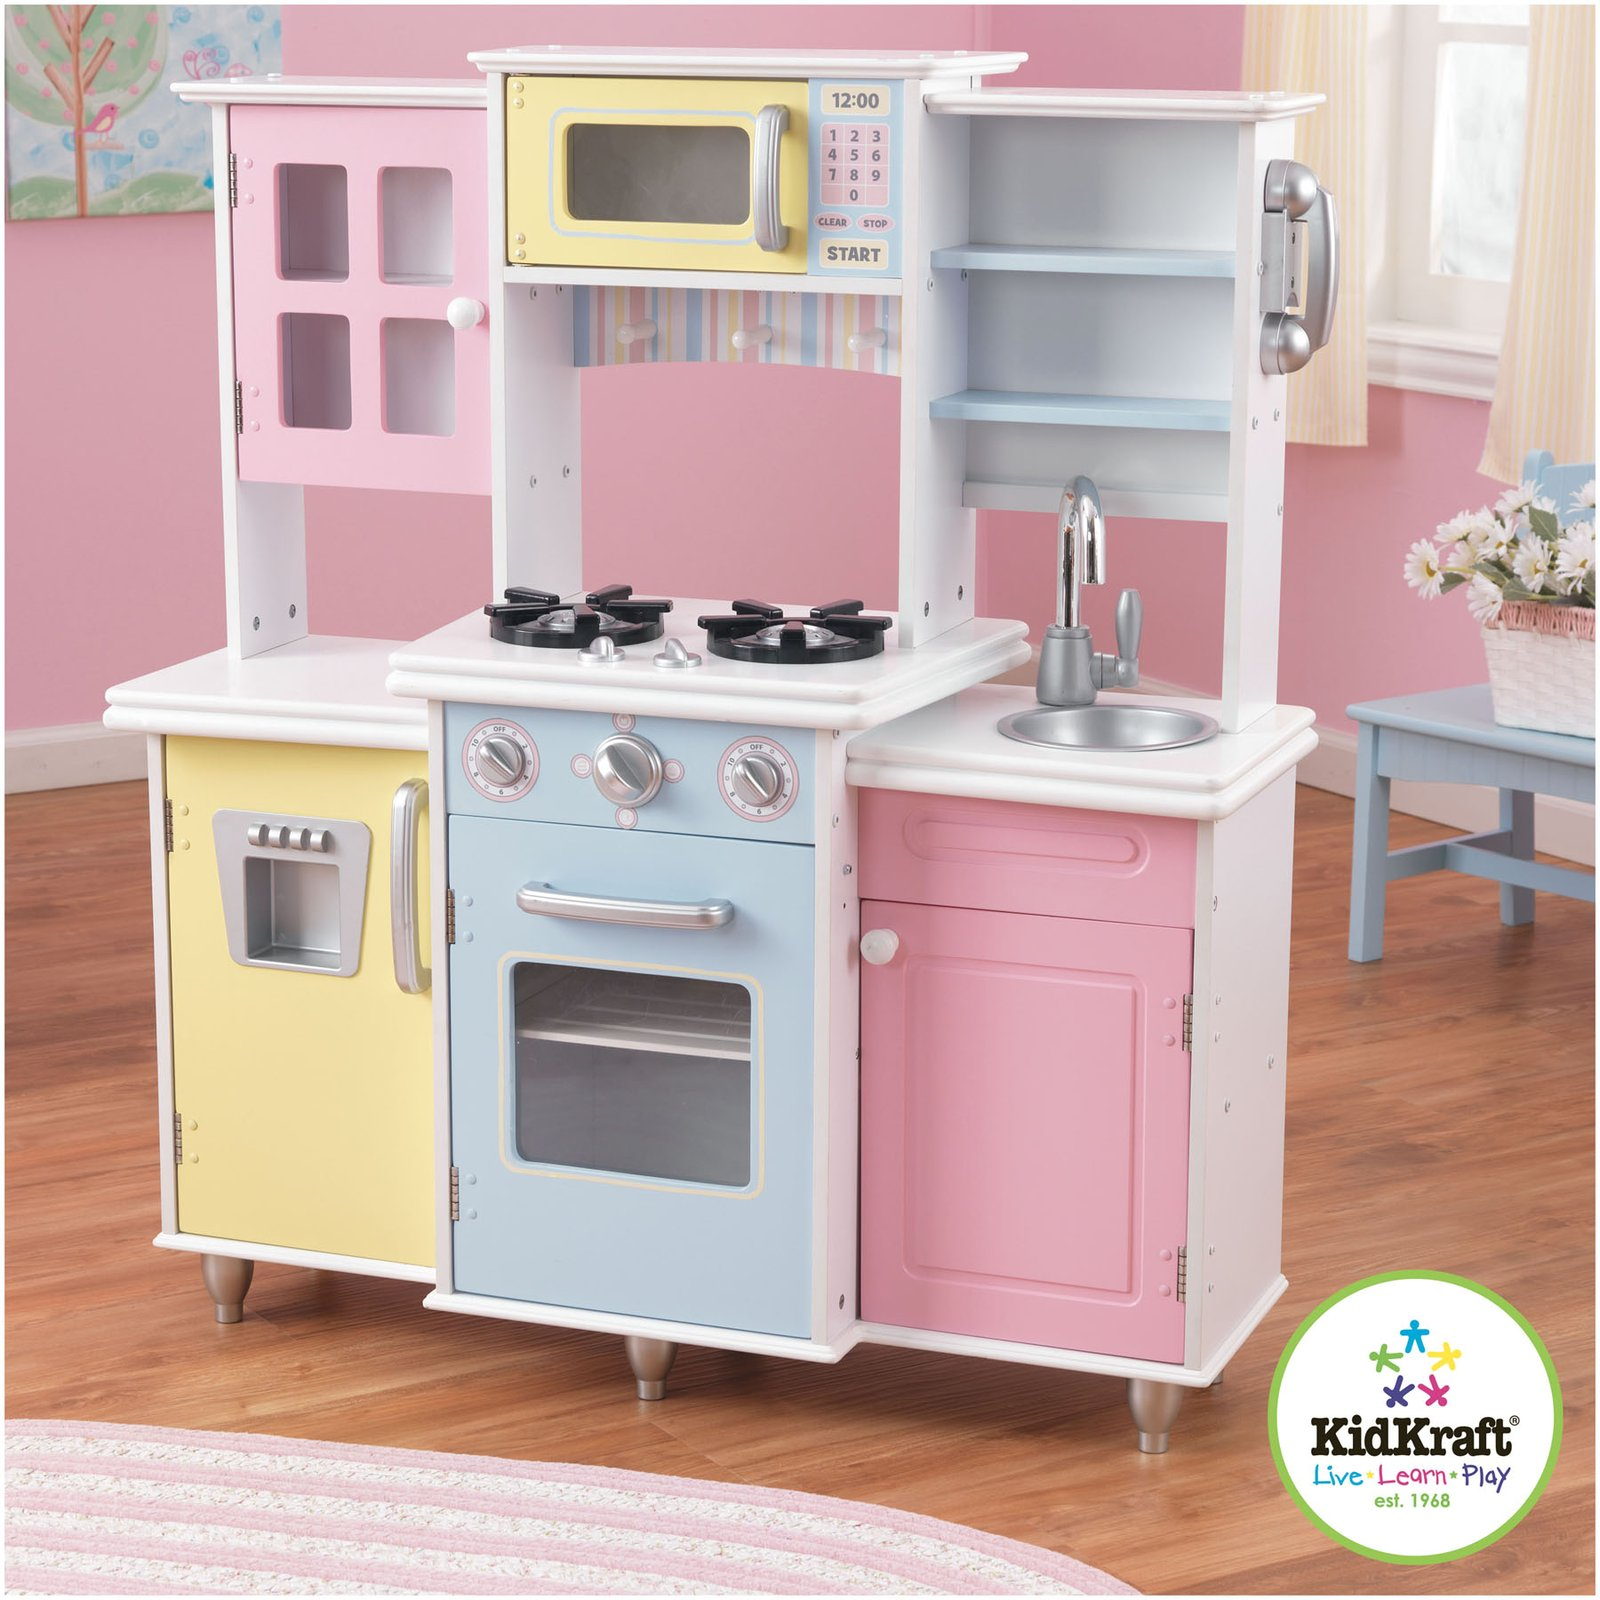 Kidkraft kitchen pink kitchen ideas for Kitchen set pink